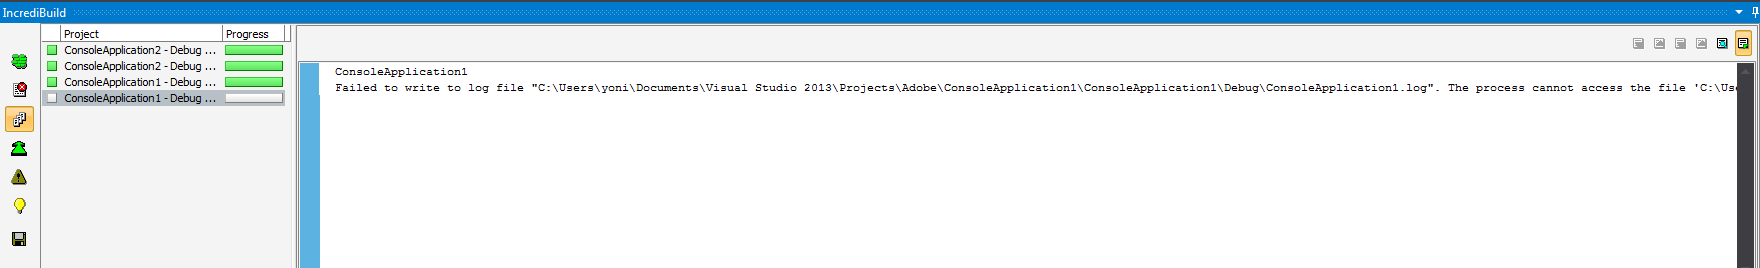 """Incredi8uiId  Project  ConsoleAppIicabon2 - Debug  ConsoleAppIicaton2-Debug .  ConsoleAppIicatonI - Debug  Progress  Con s LeApp L at 1  Failed to write to log file  Studio _ log"""" _  The s s  the file"""